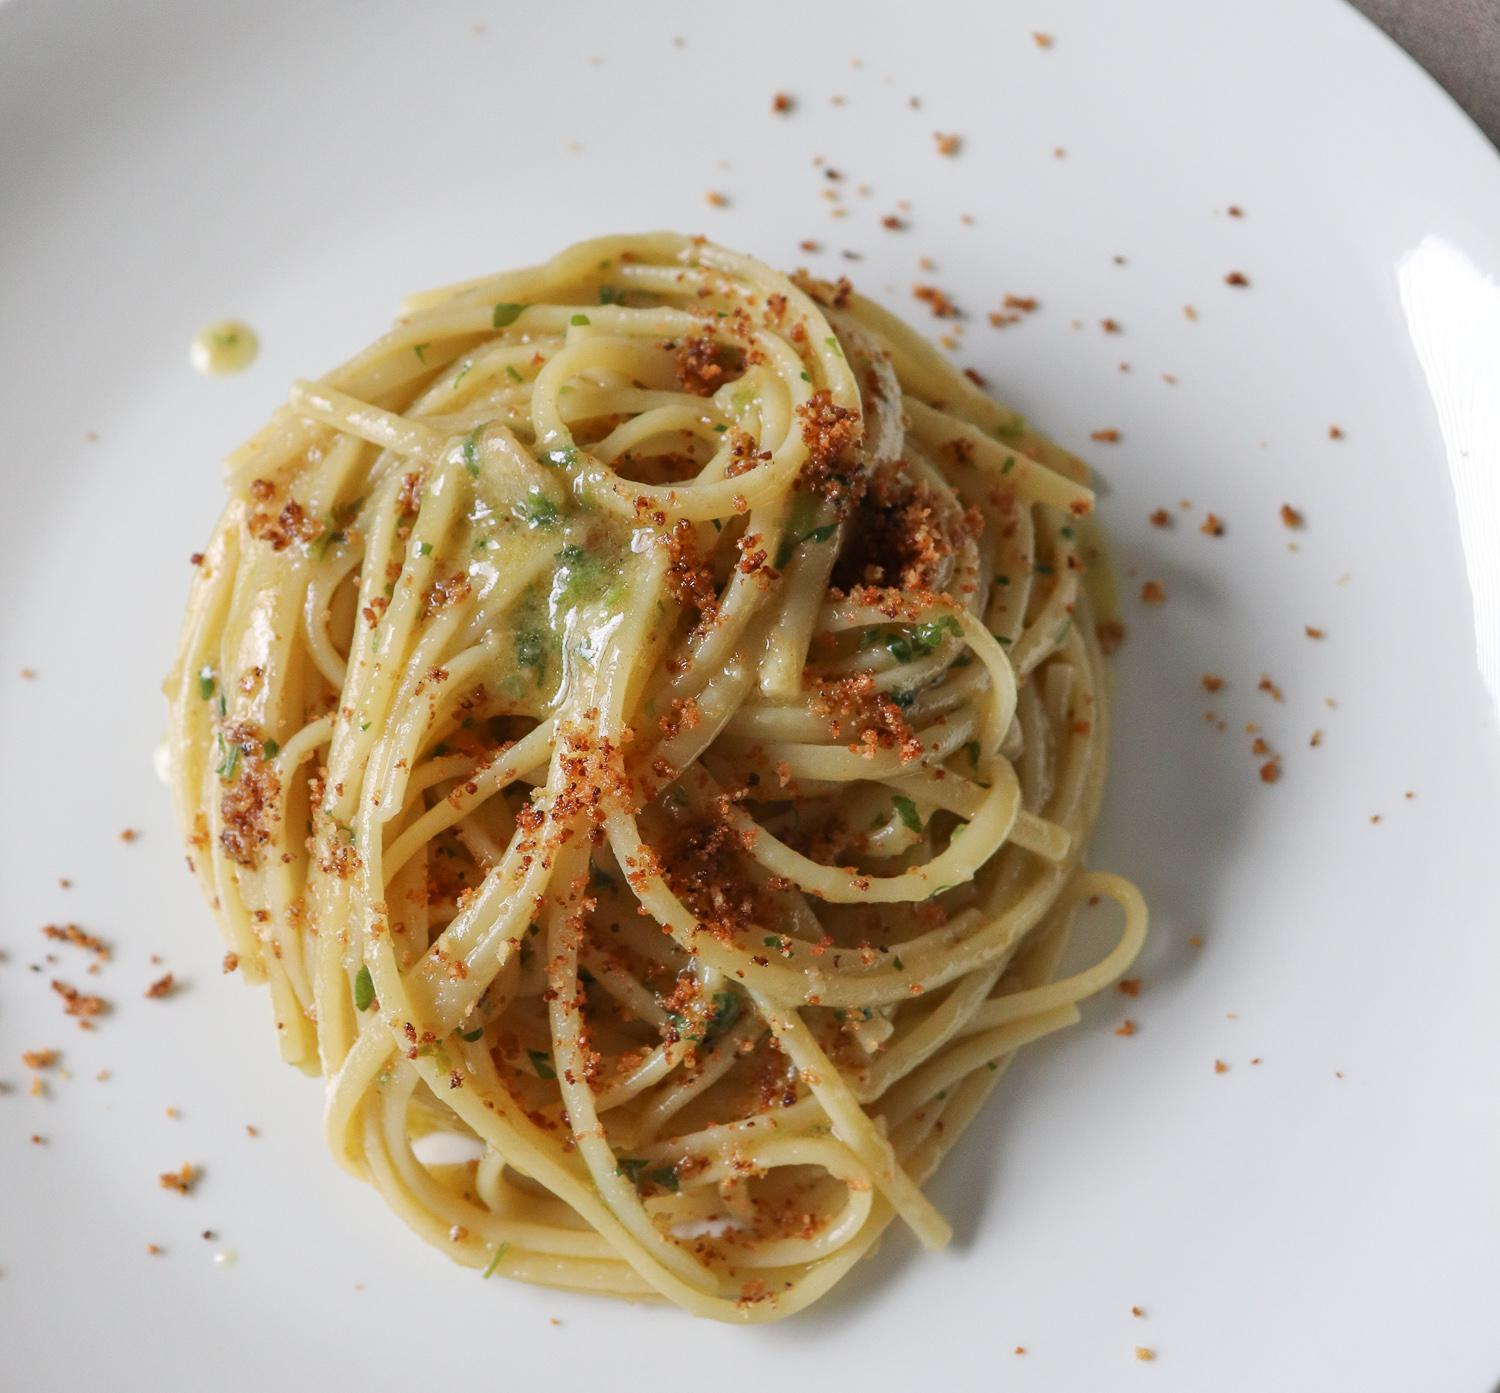 Pasta Aglio e Olio Recipe (Pasta with garlic and olive oil)